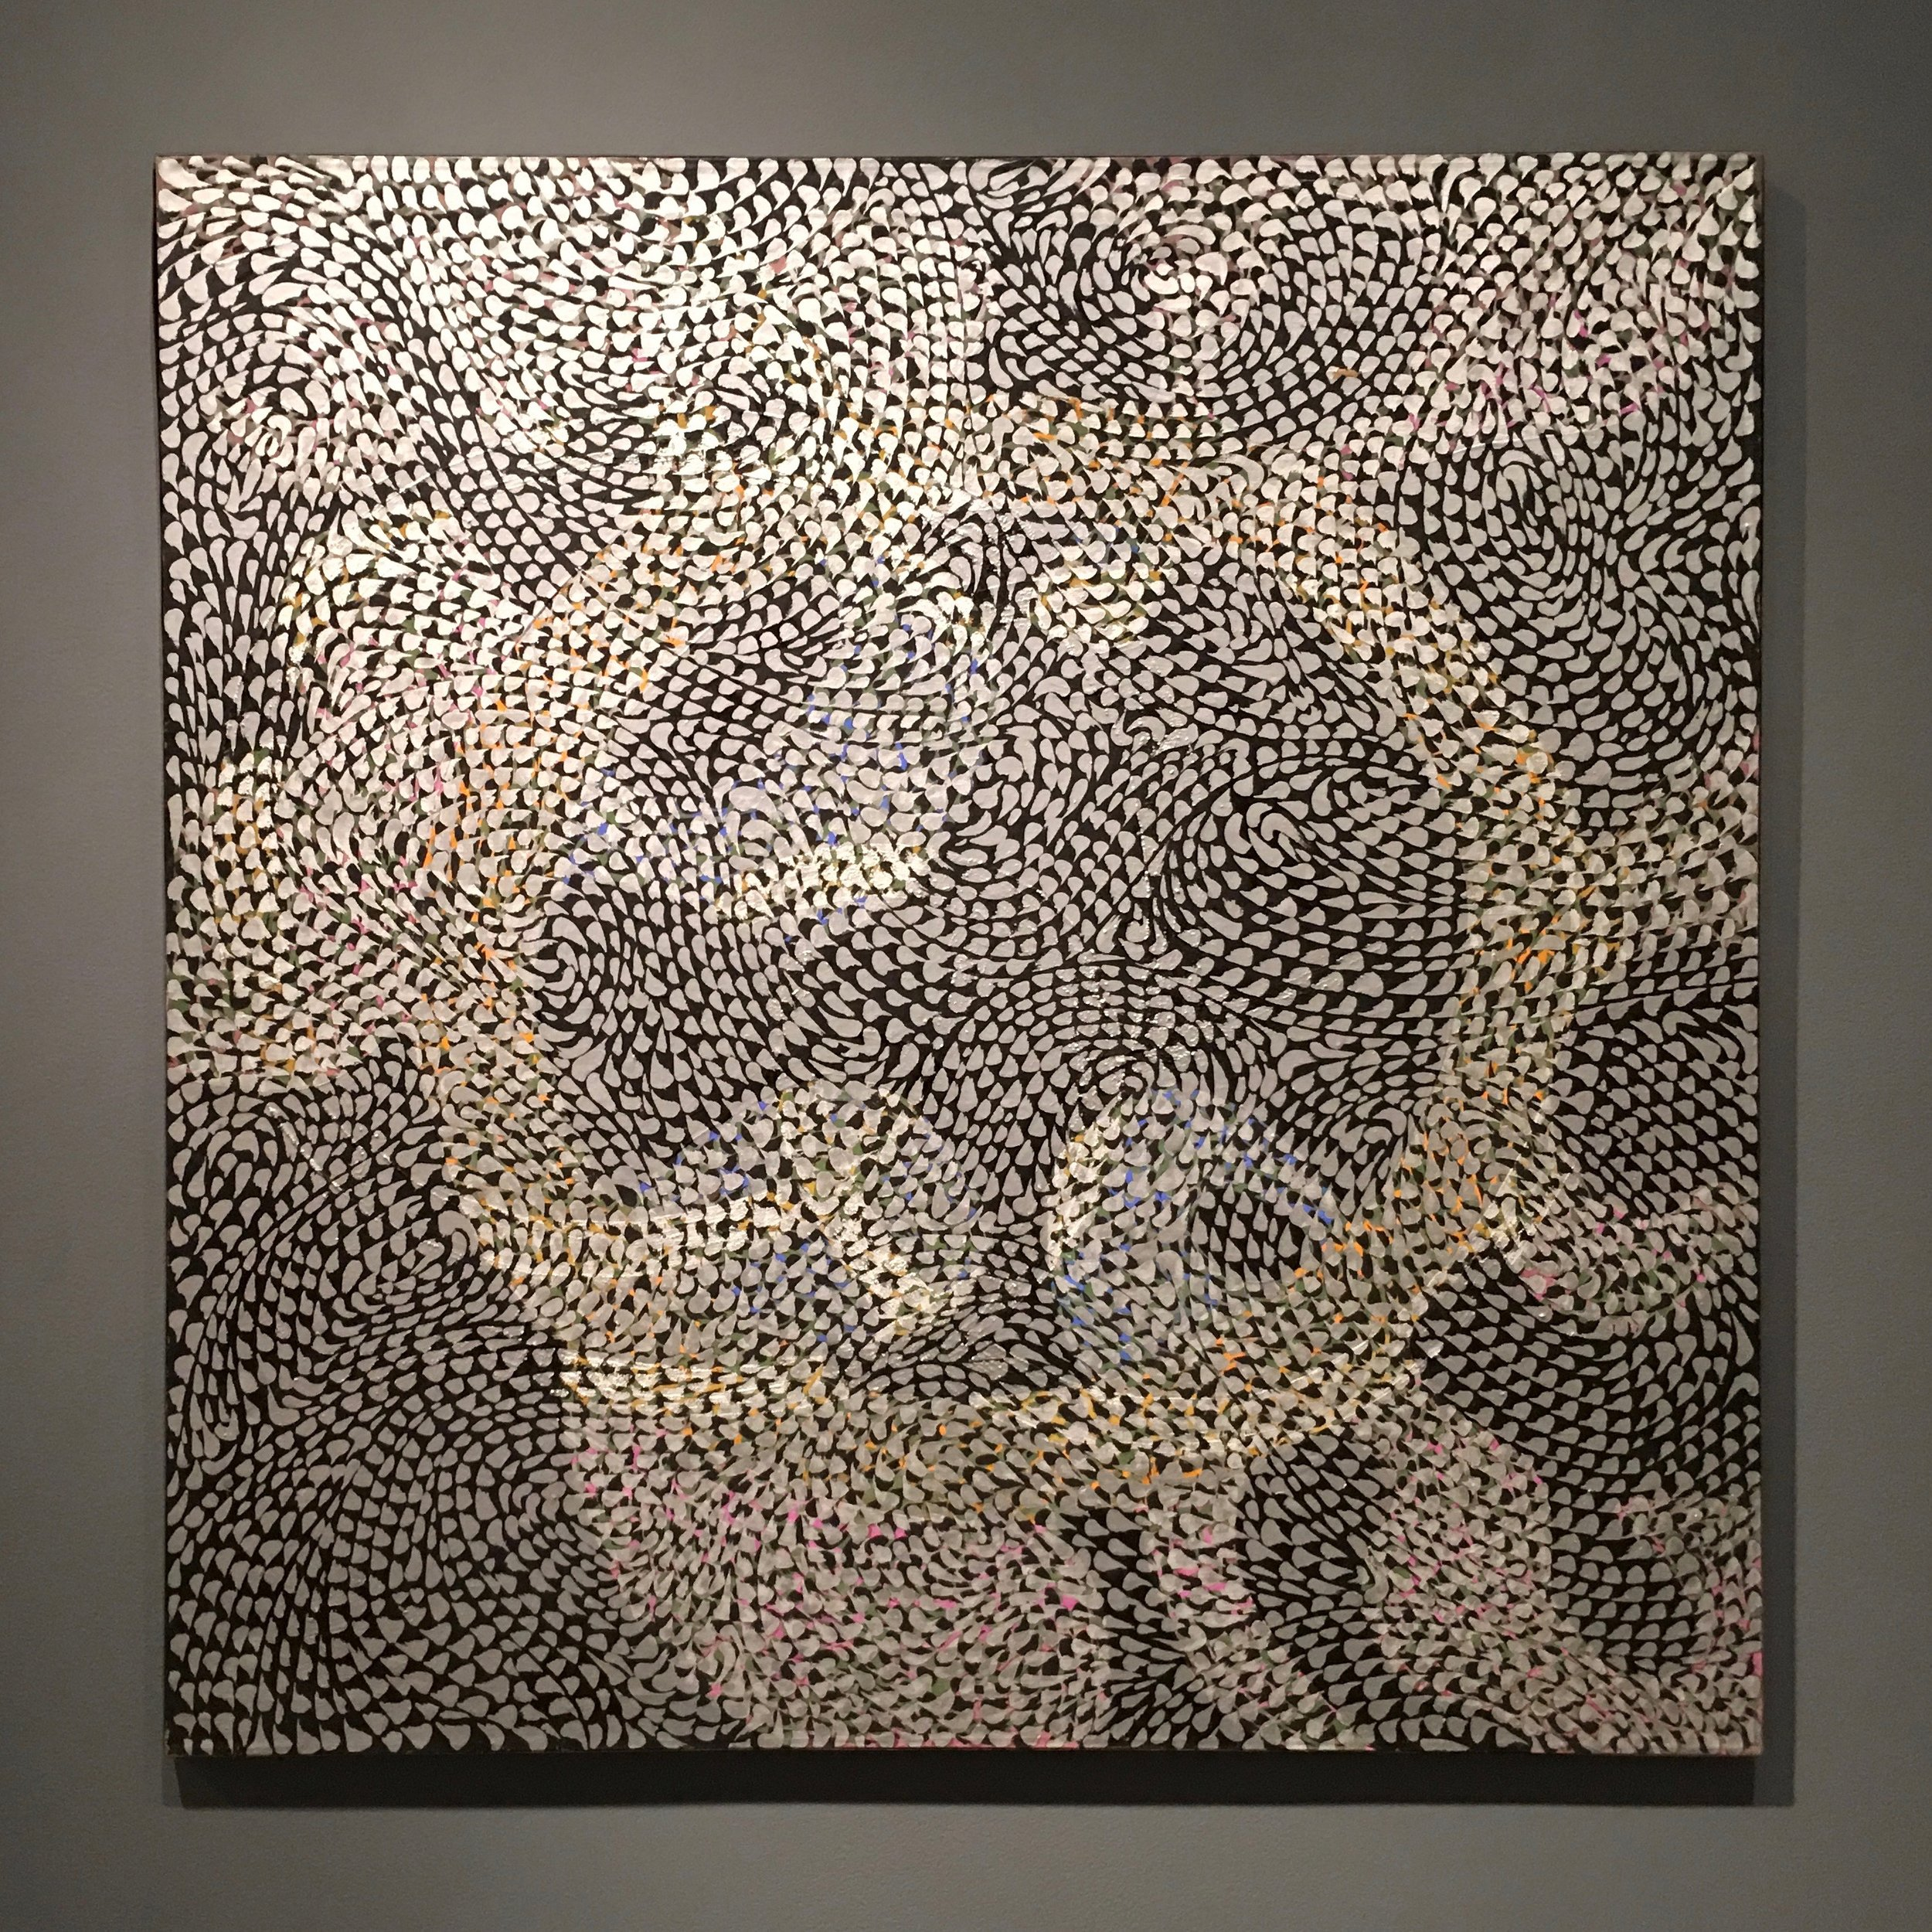 Claire Falkenstein,  Moving Points in Silver , 1970, Acrylic on Canvas